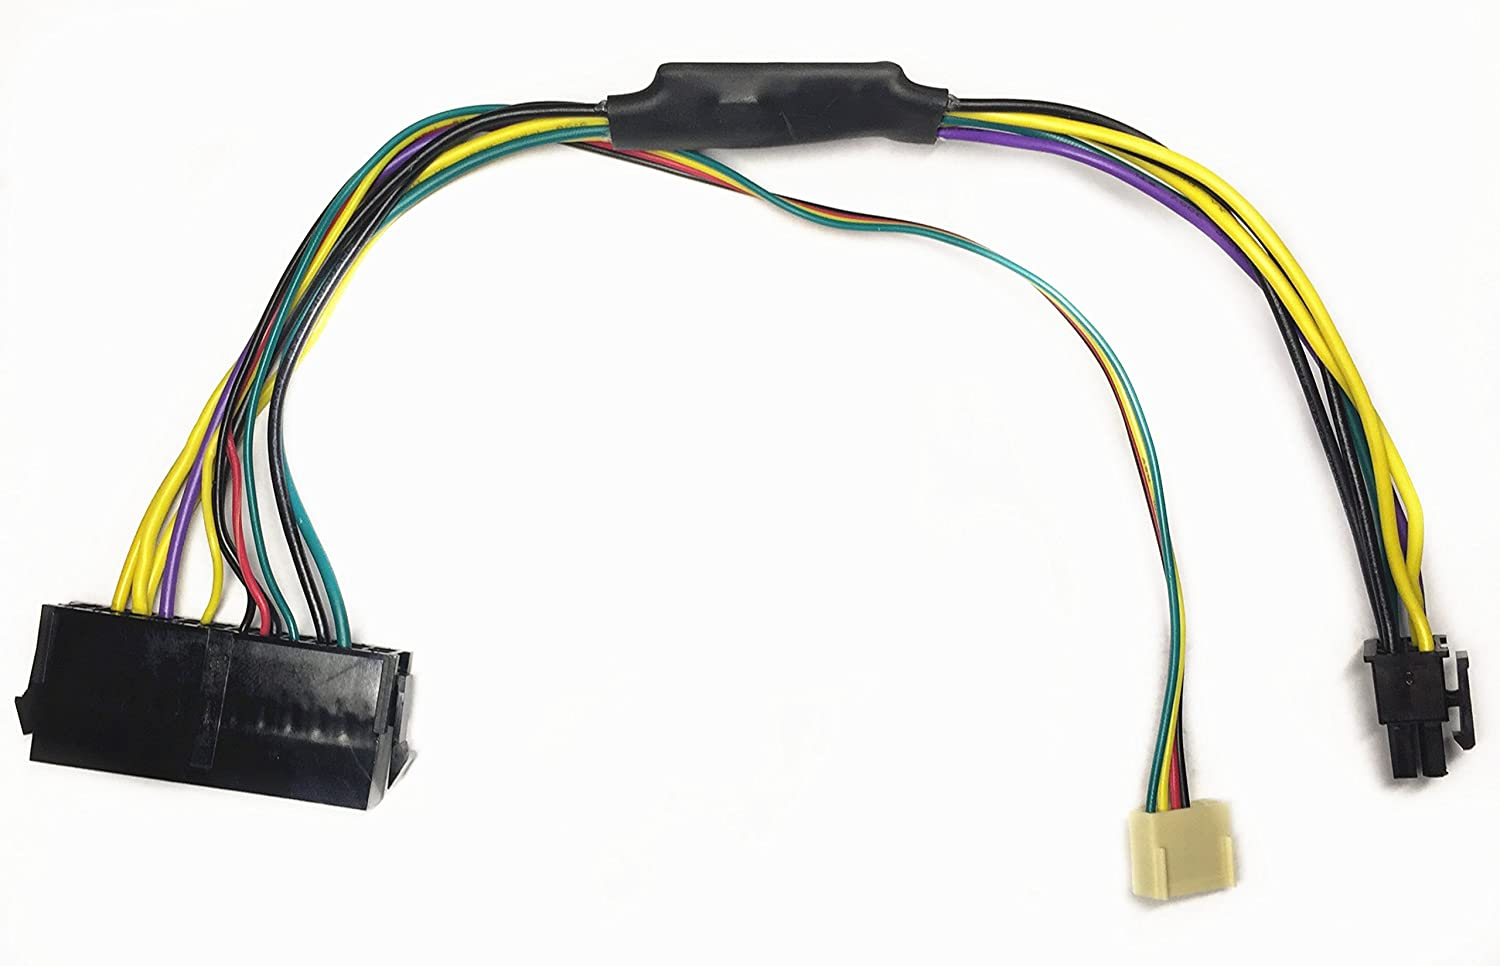 EZSync ATX PSU (24-Pin) to HP Motherboard (6-Pin PCI-E, 2 Ports) Power Adapter Cable for HP Z220/Z230 Workstation, 11 inches and 18 AWG, EZSync910 Purenitetech